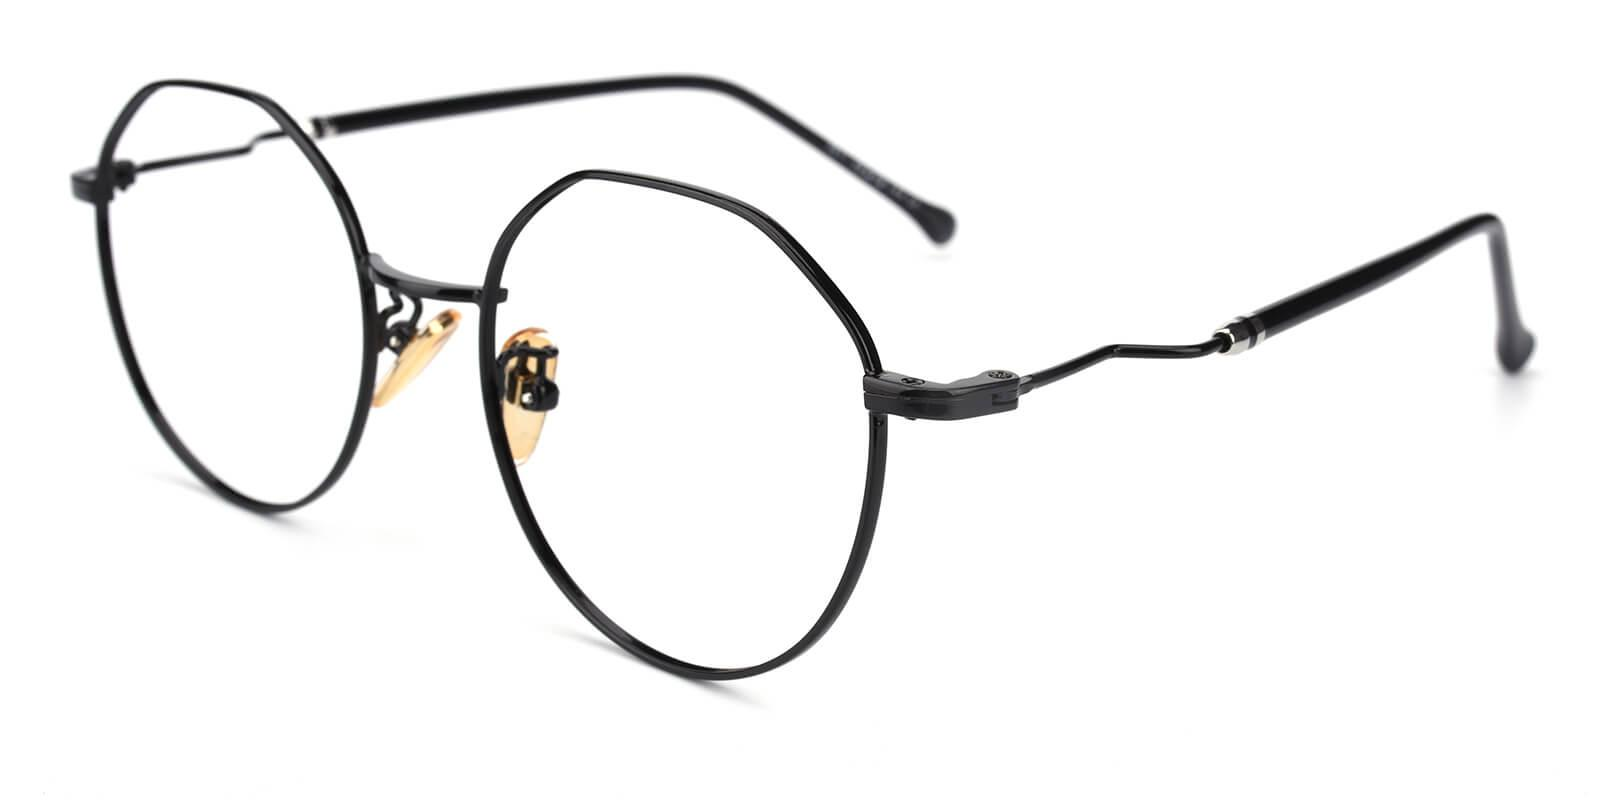 Clarker-Black-Geometric-Metal-Eyeglasses-additional1